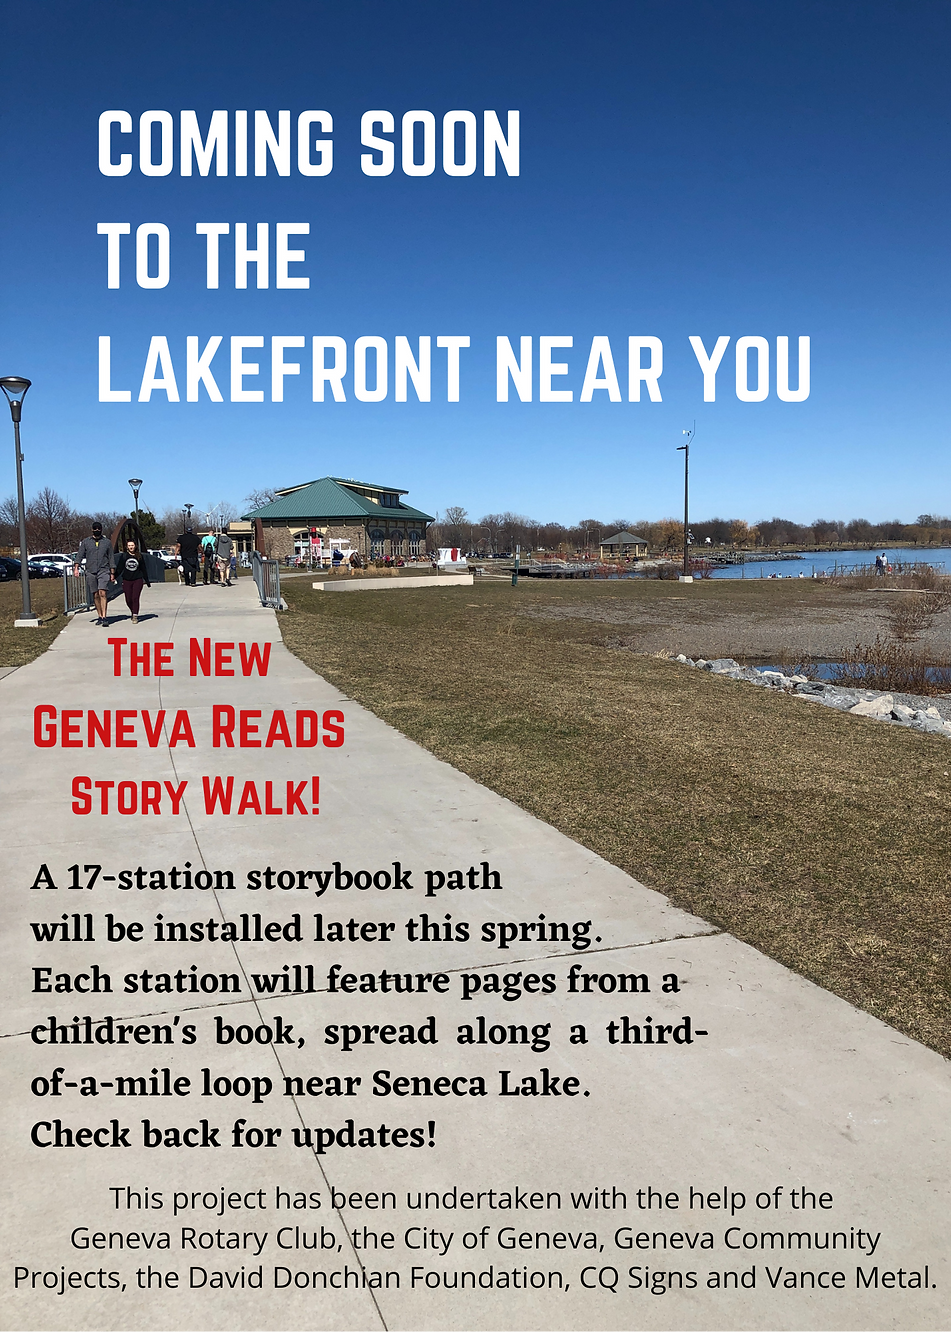 COMING SOON TO THE LAKEFRONT NEAR YOU.pn